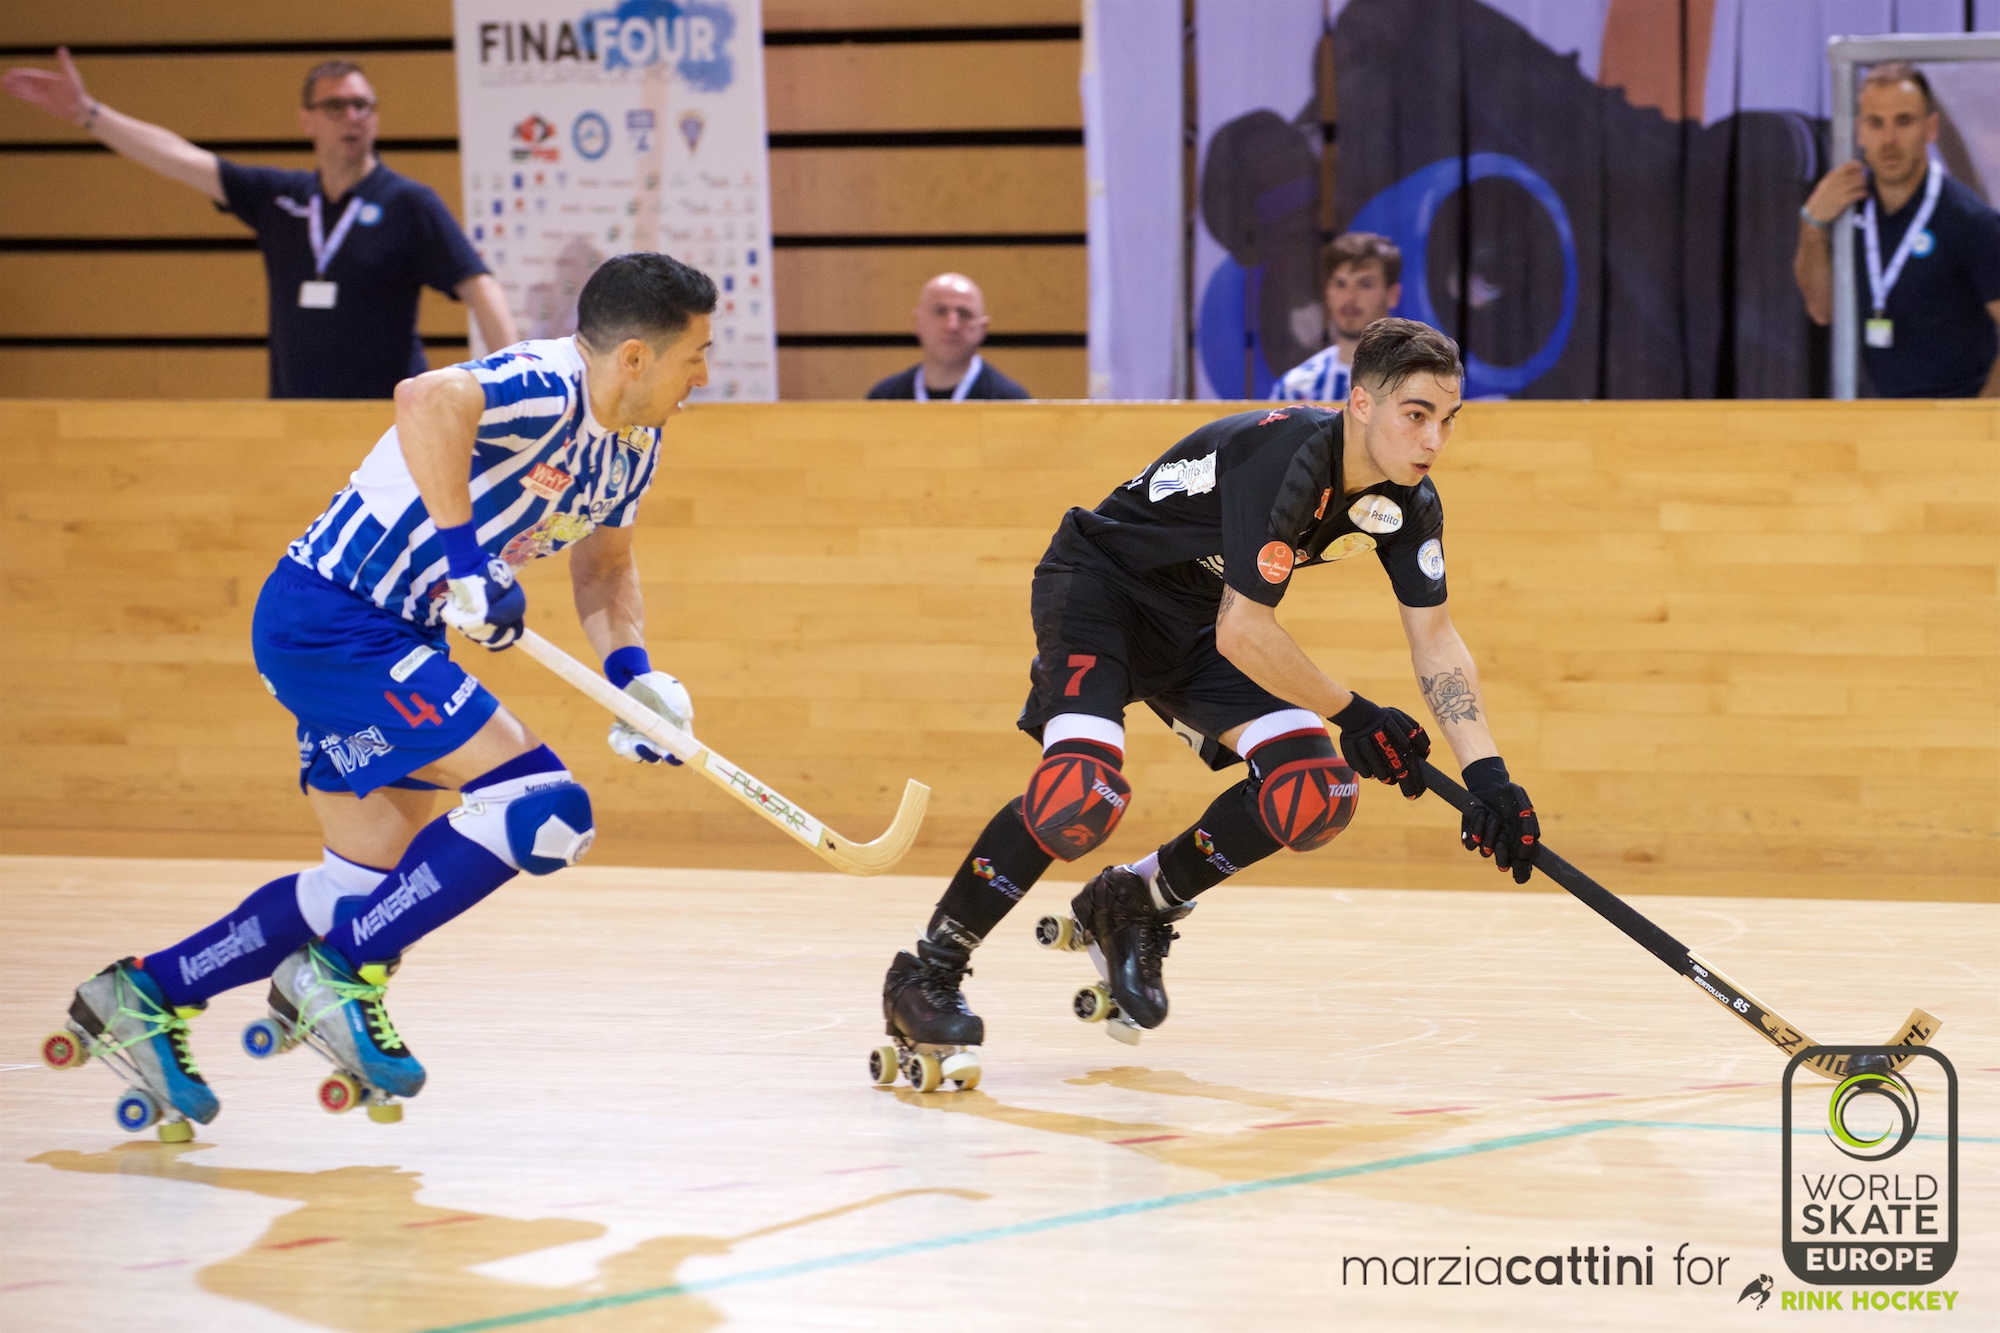 PHOTOS – 27/04/2019 - F4 WS EUROPE CUP - Sarzana (IT) x Valdagno (IT)